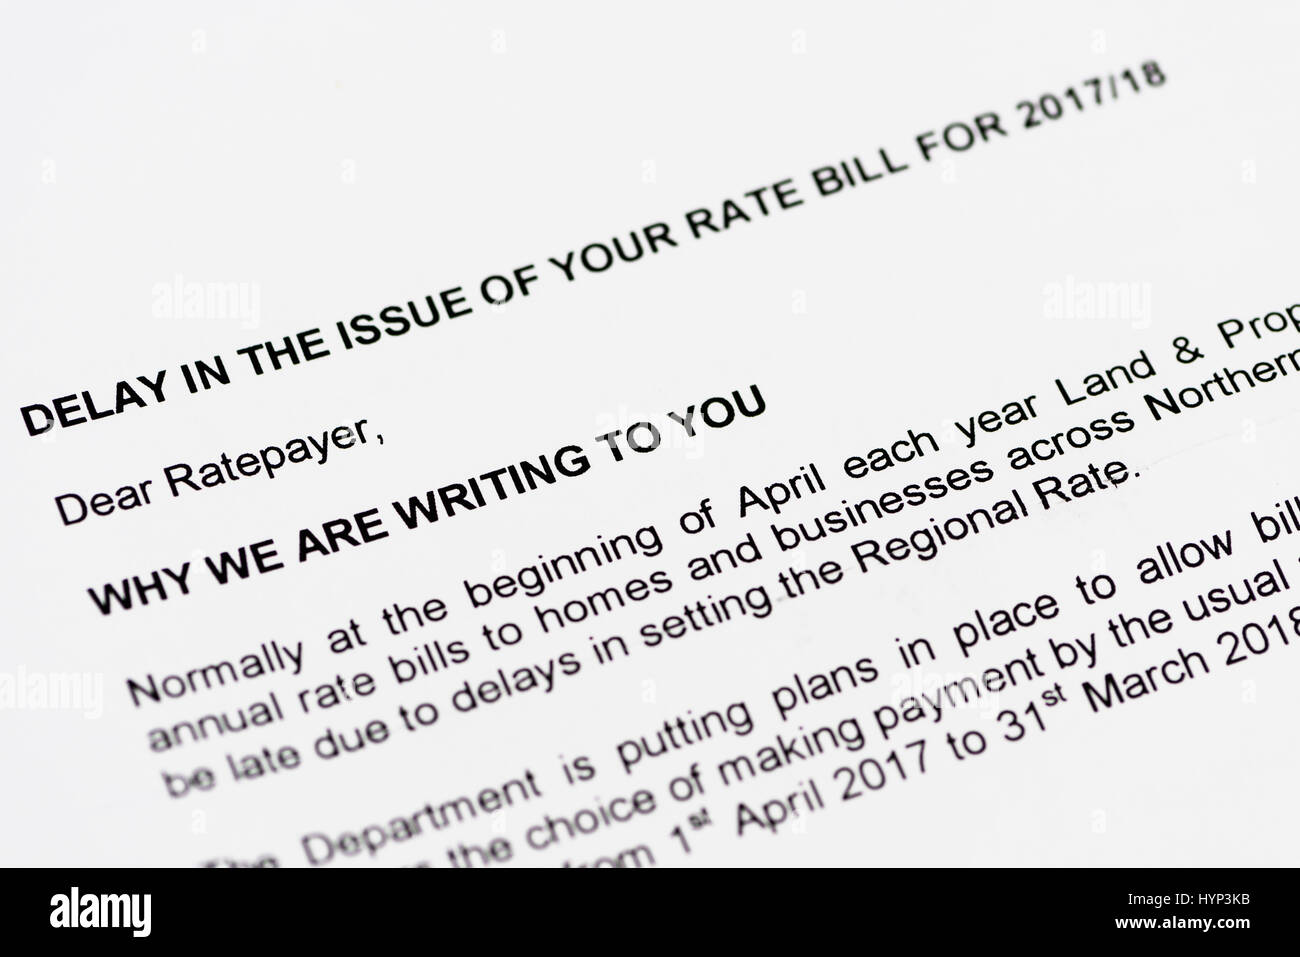 Northern Ireland. 06 APR 2017 - Letters arrive at properties across Northern Ireland advising of a delay in issuing - Stock Image